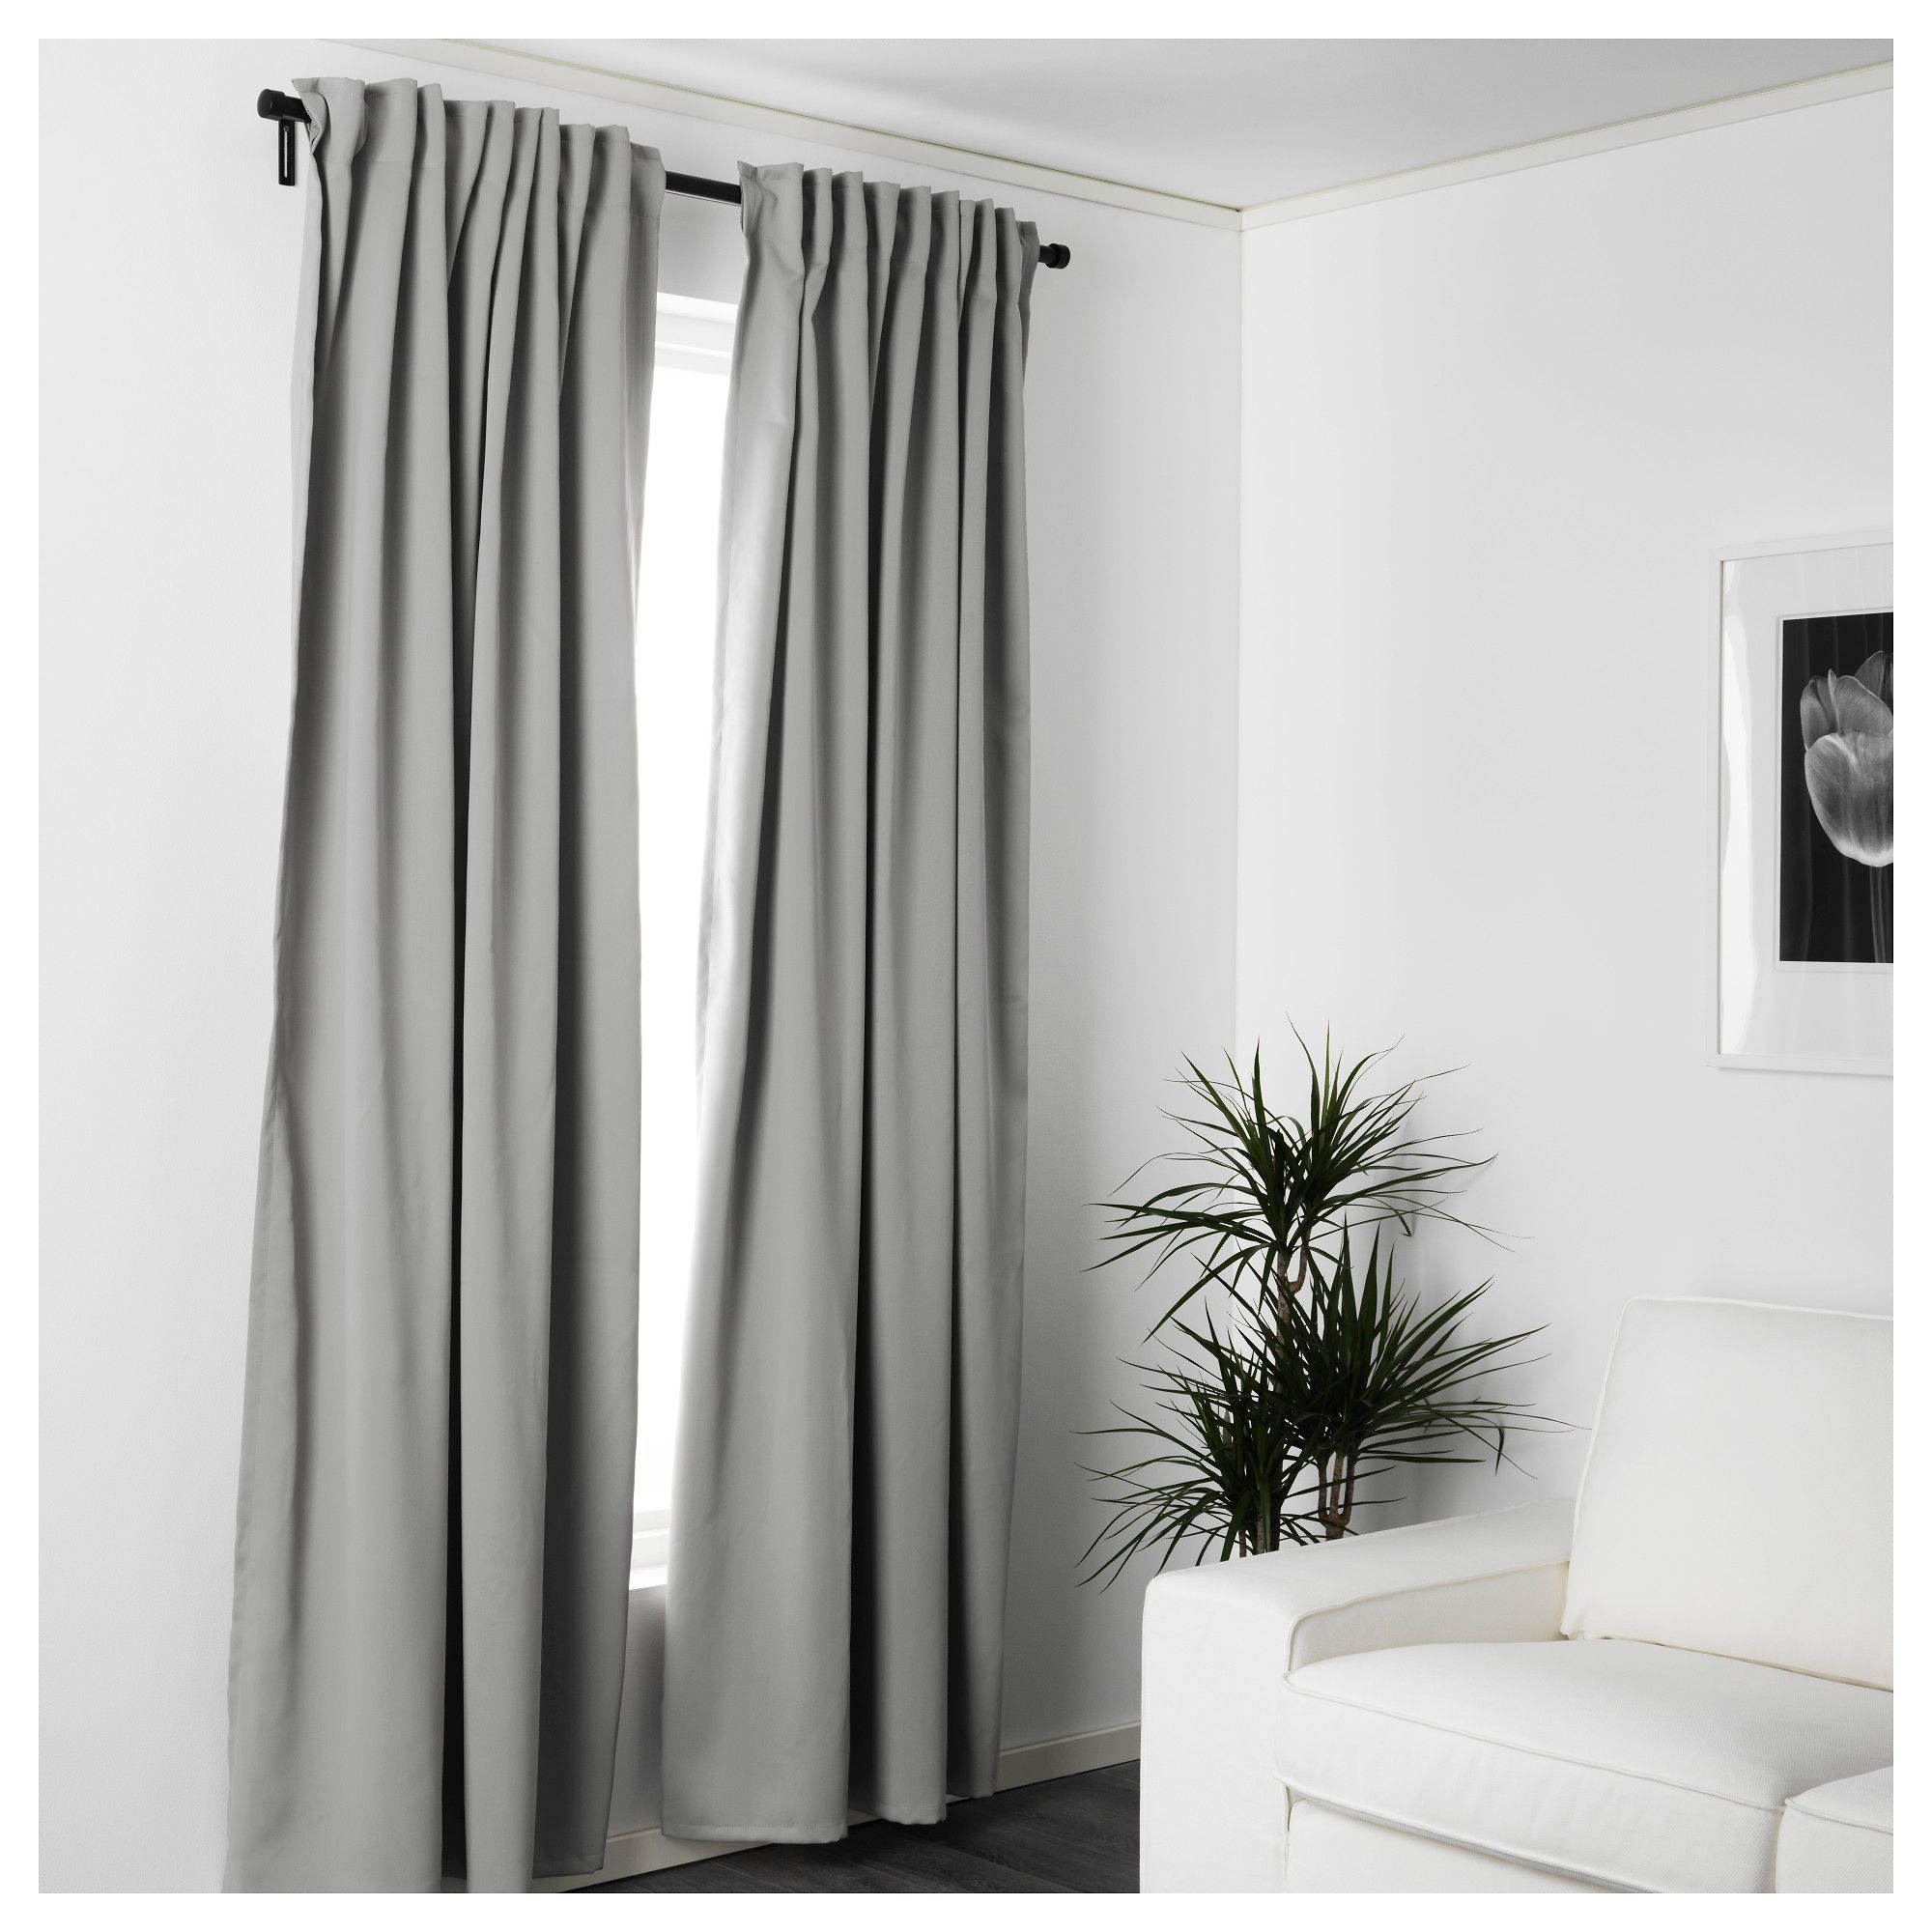 Ikea Vorhänge Majgull Ikea Majgull Blackout Curtains 1 Pair Gray Block Out